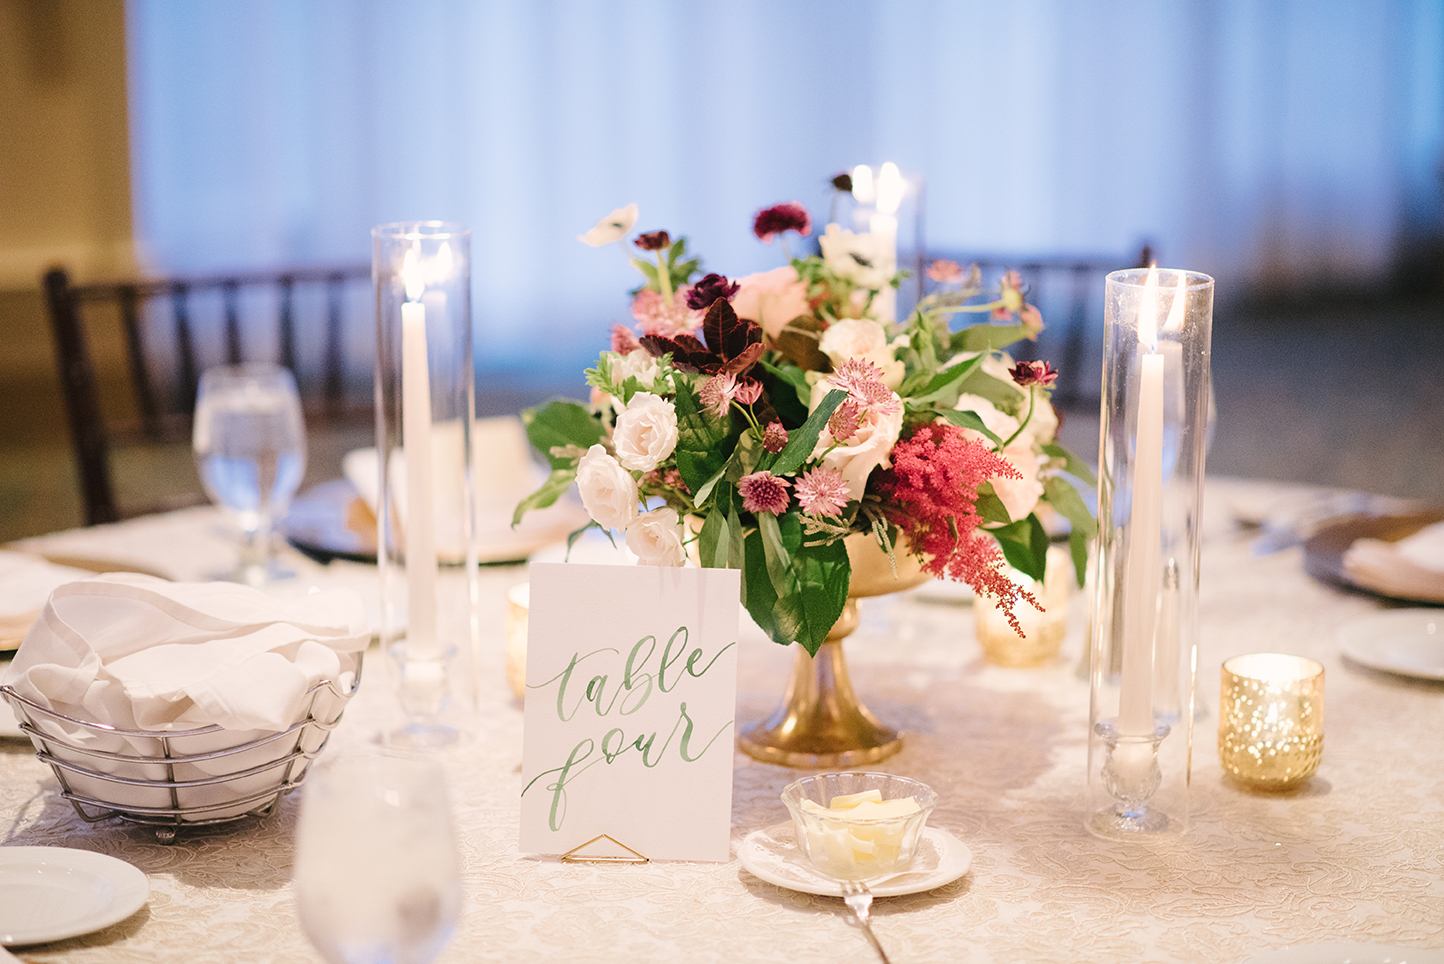 Watercolor Table Numbers by Sam Allen Creates, Photo by Eva Lin Photography